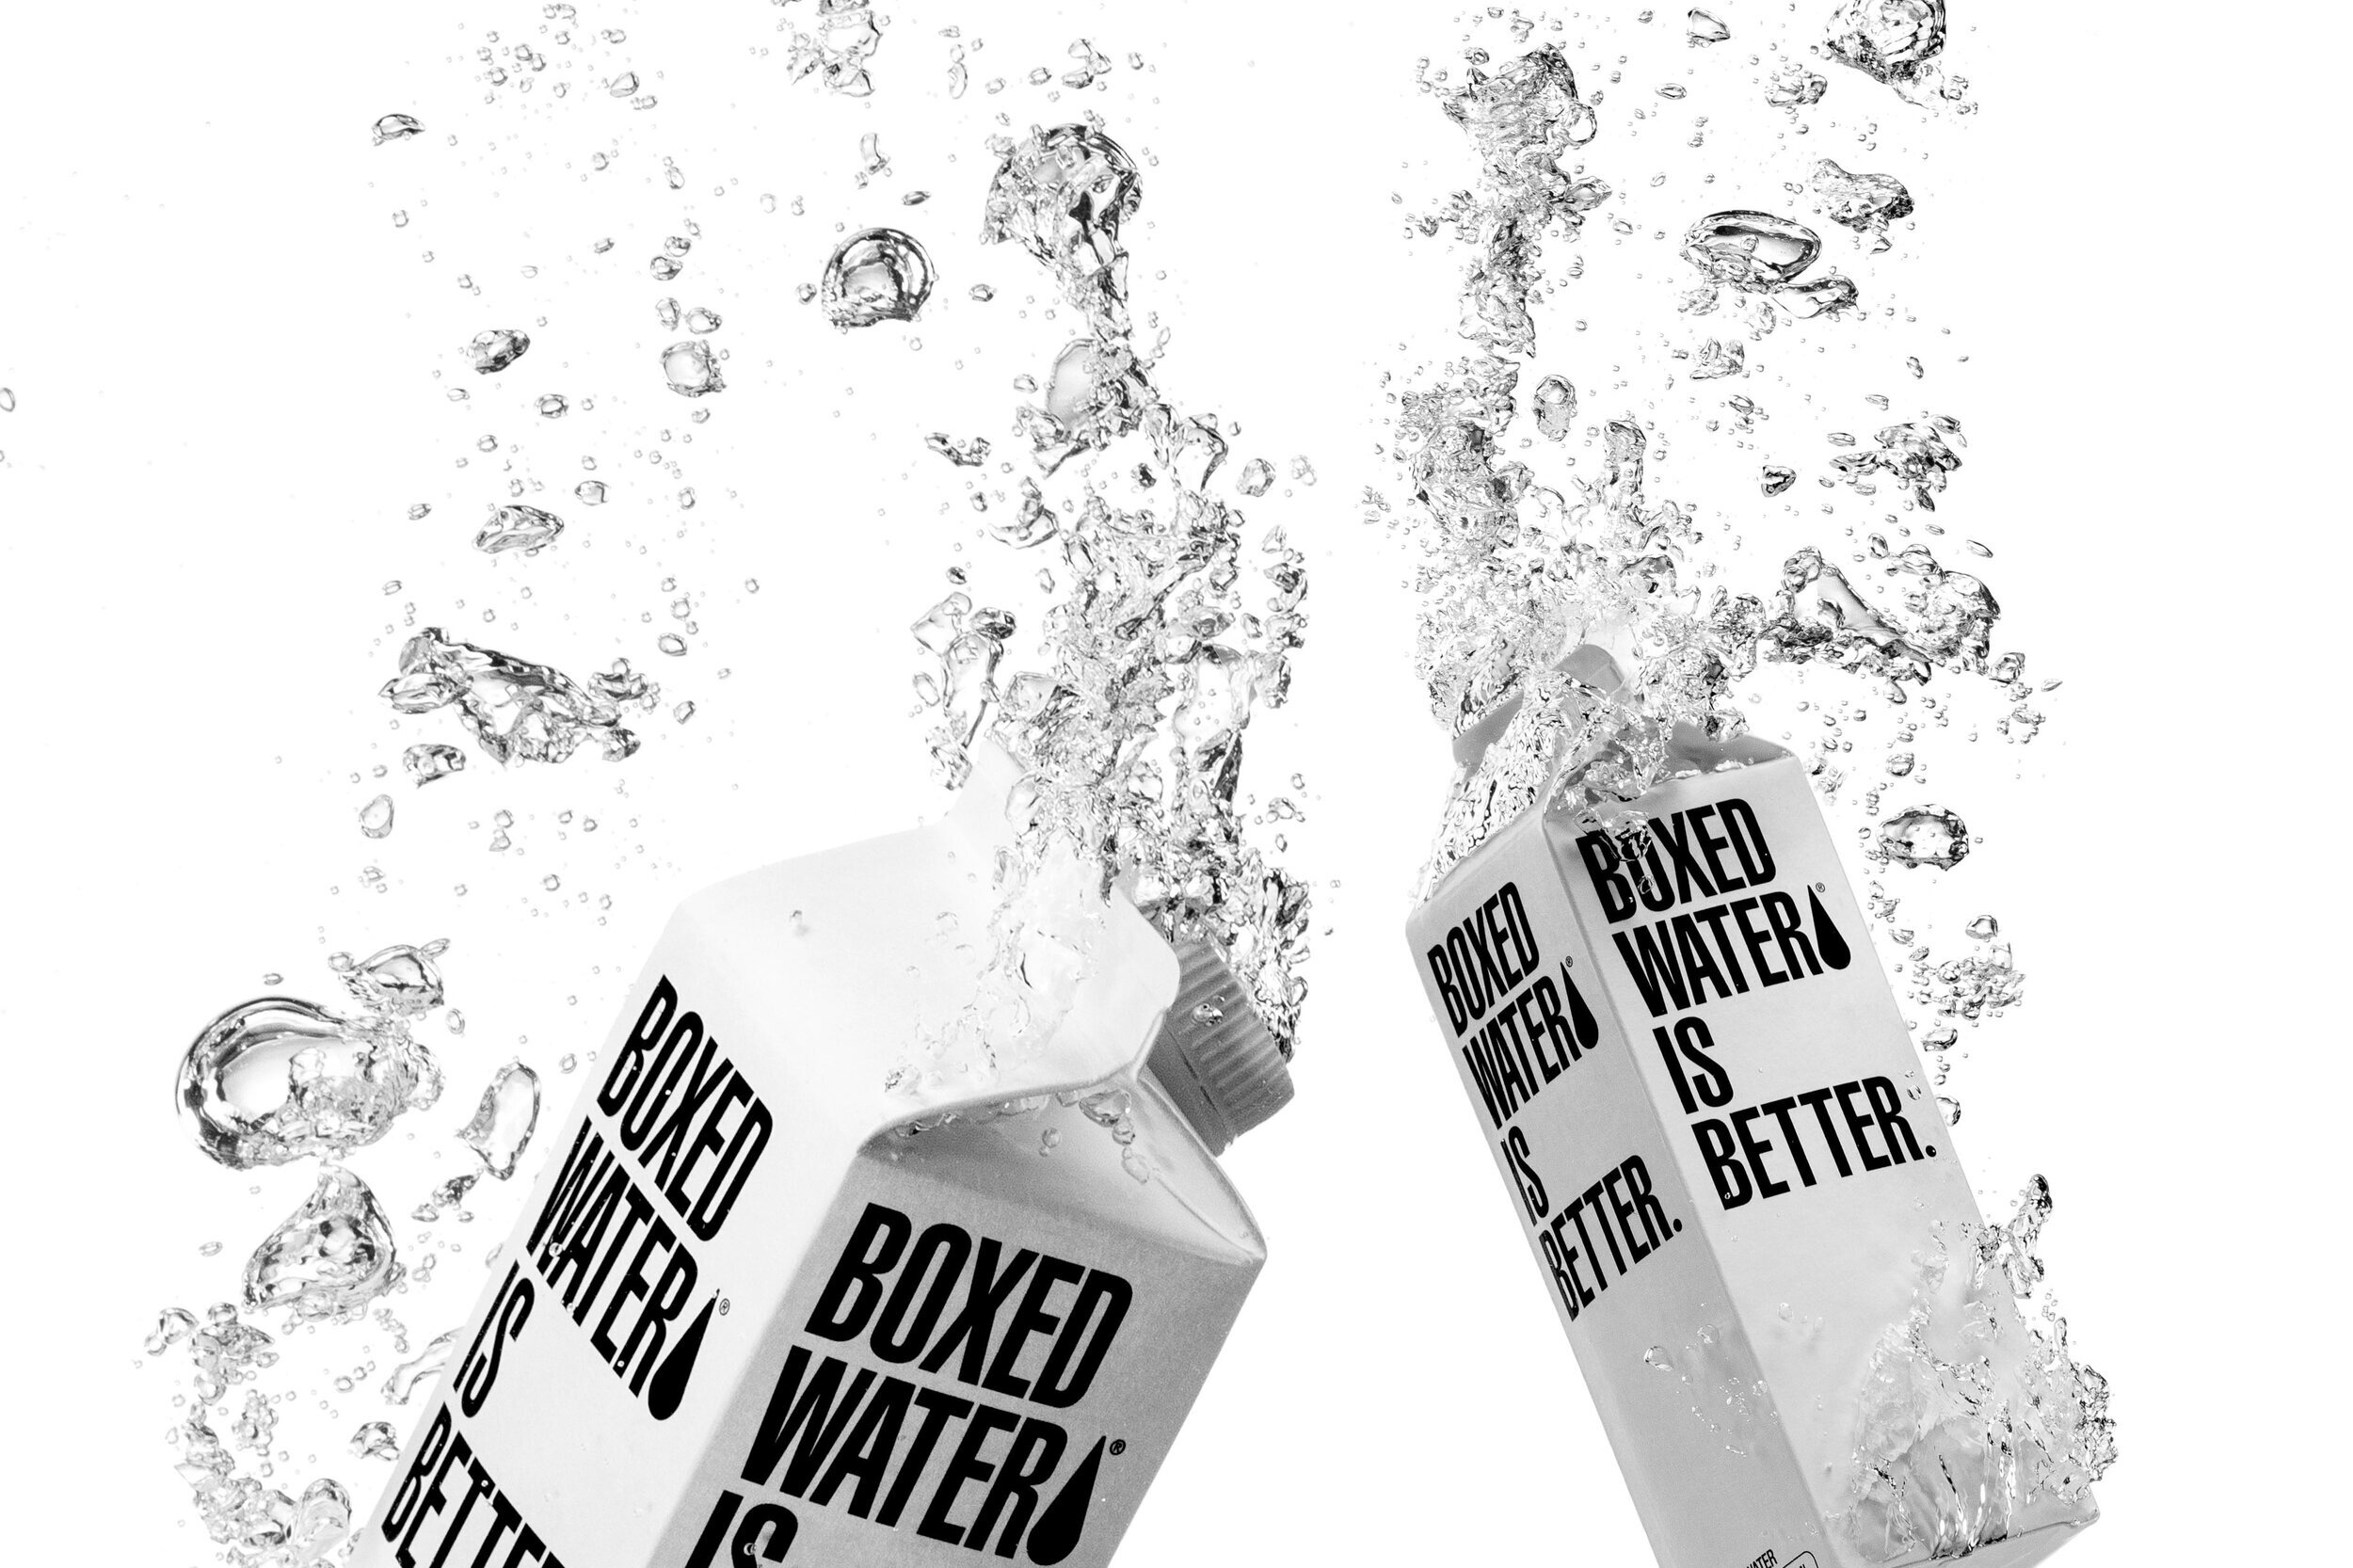 Photo courtesy of Boxed Water is Better